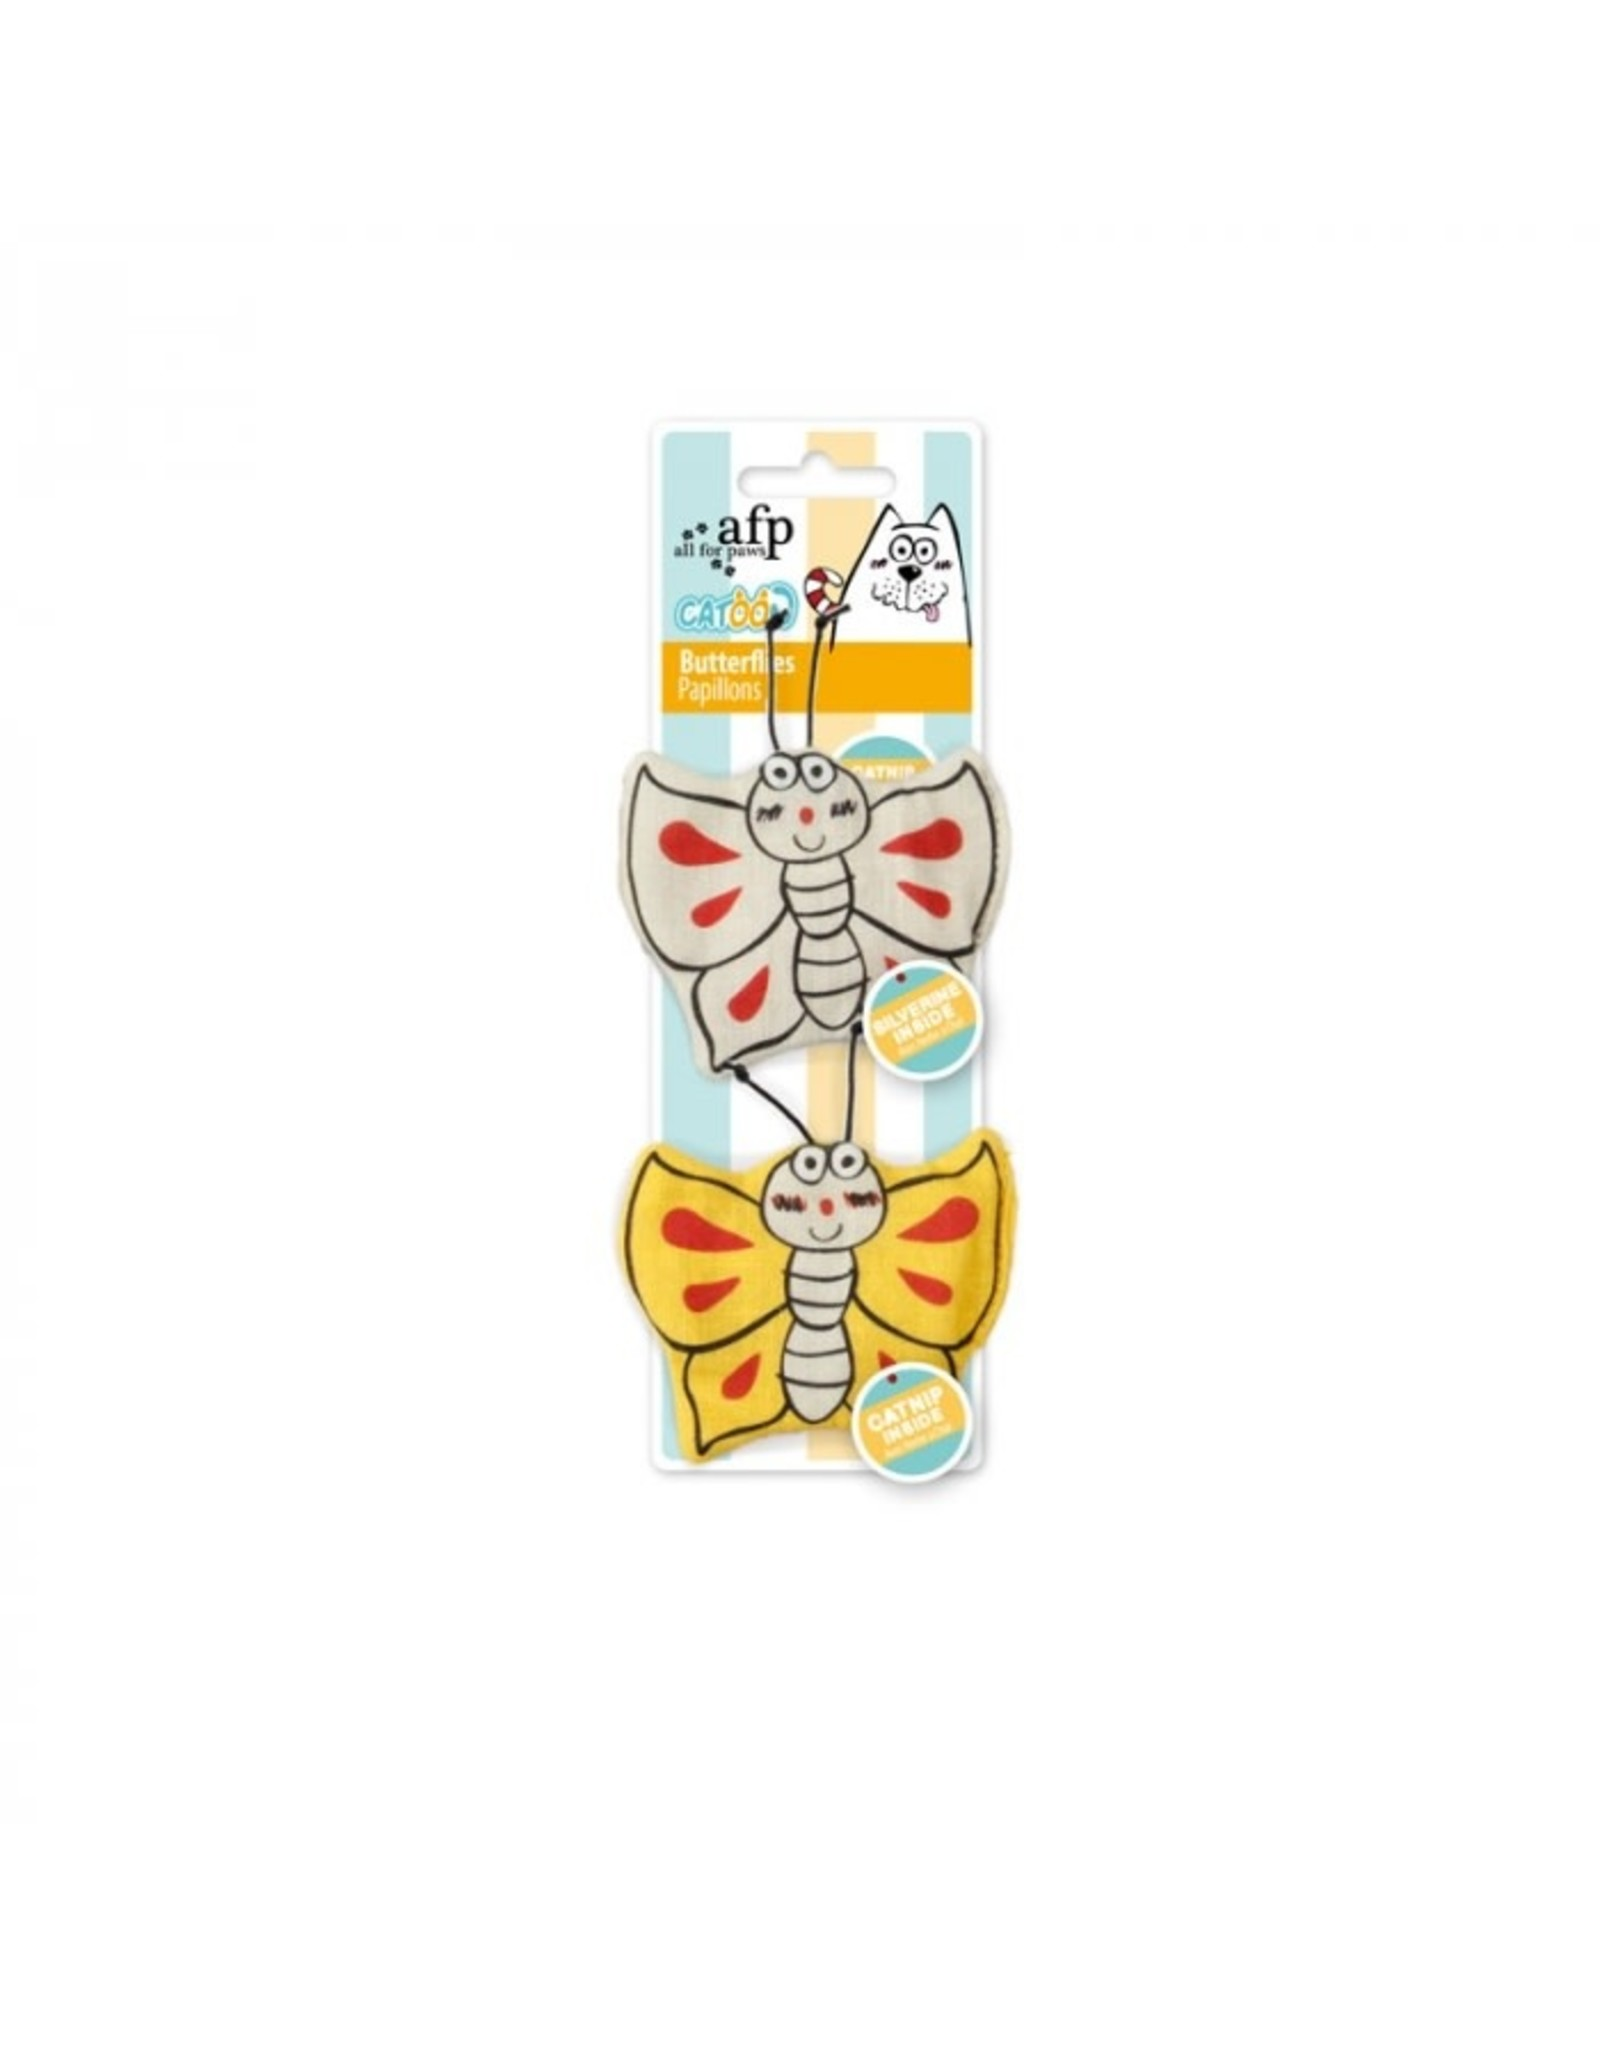 All For Paws Cotton 'Catoon' Butterflies Cat Toy, 2 pack